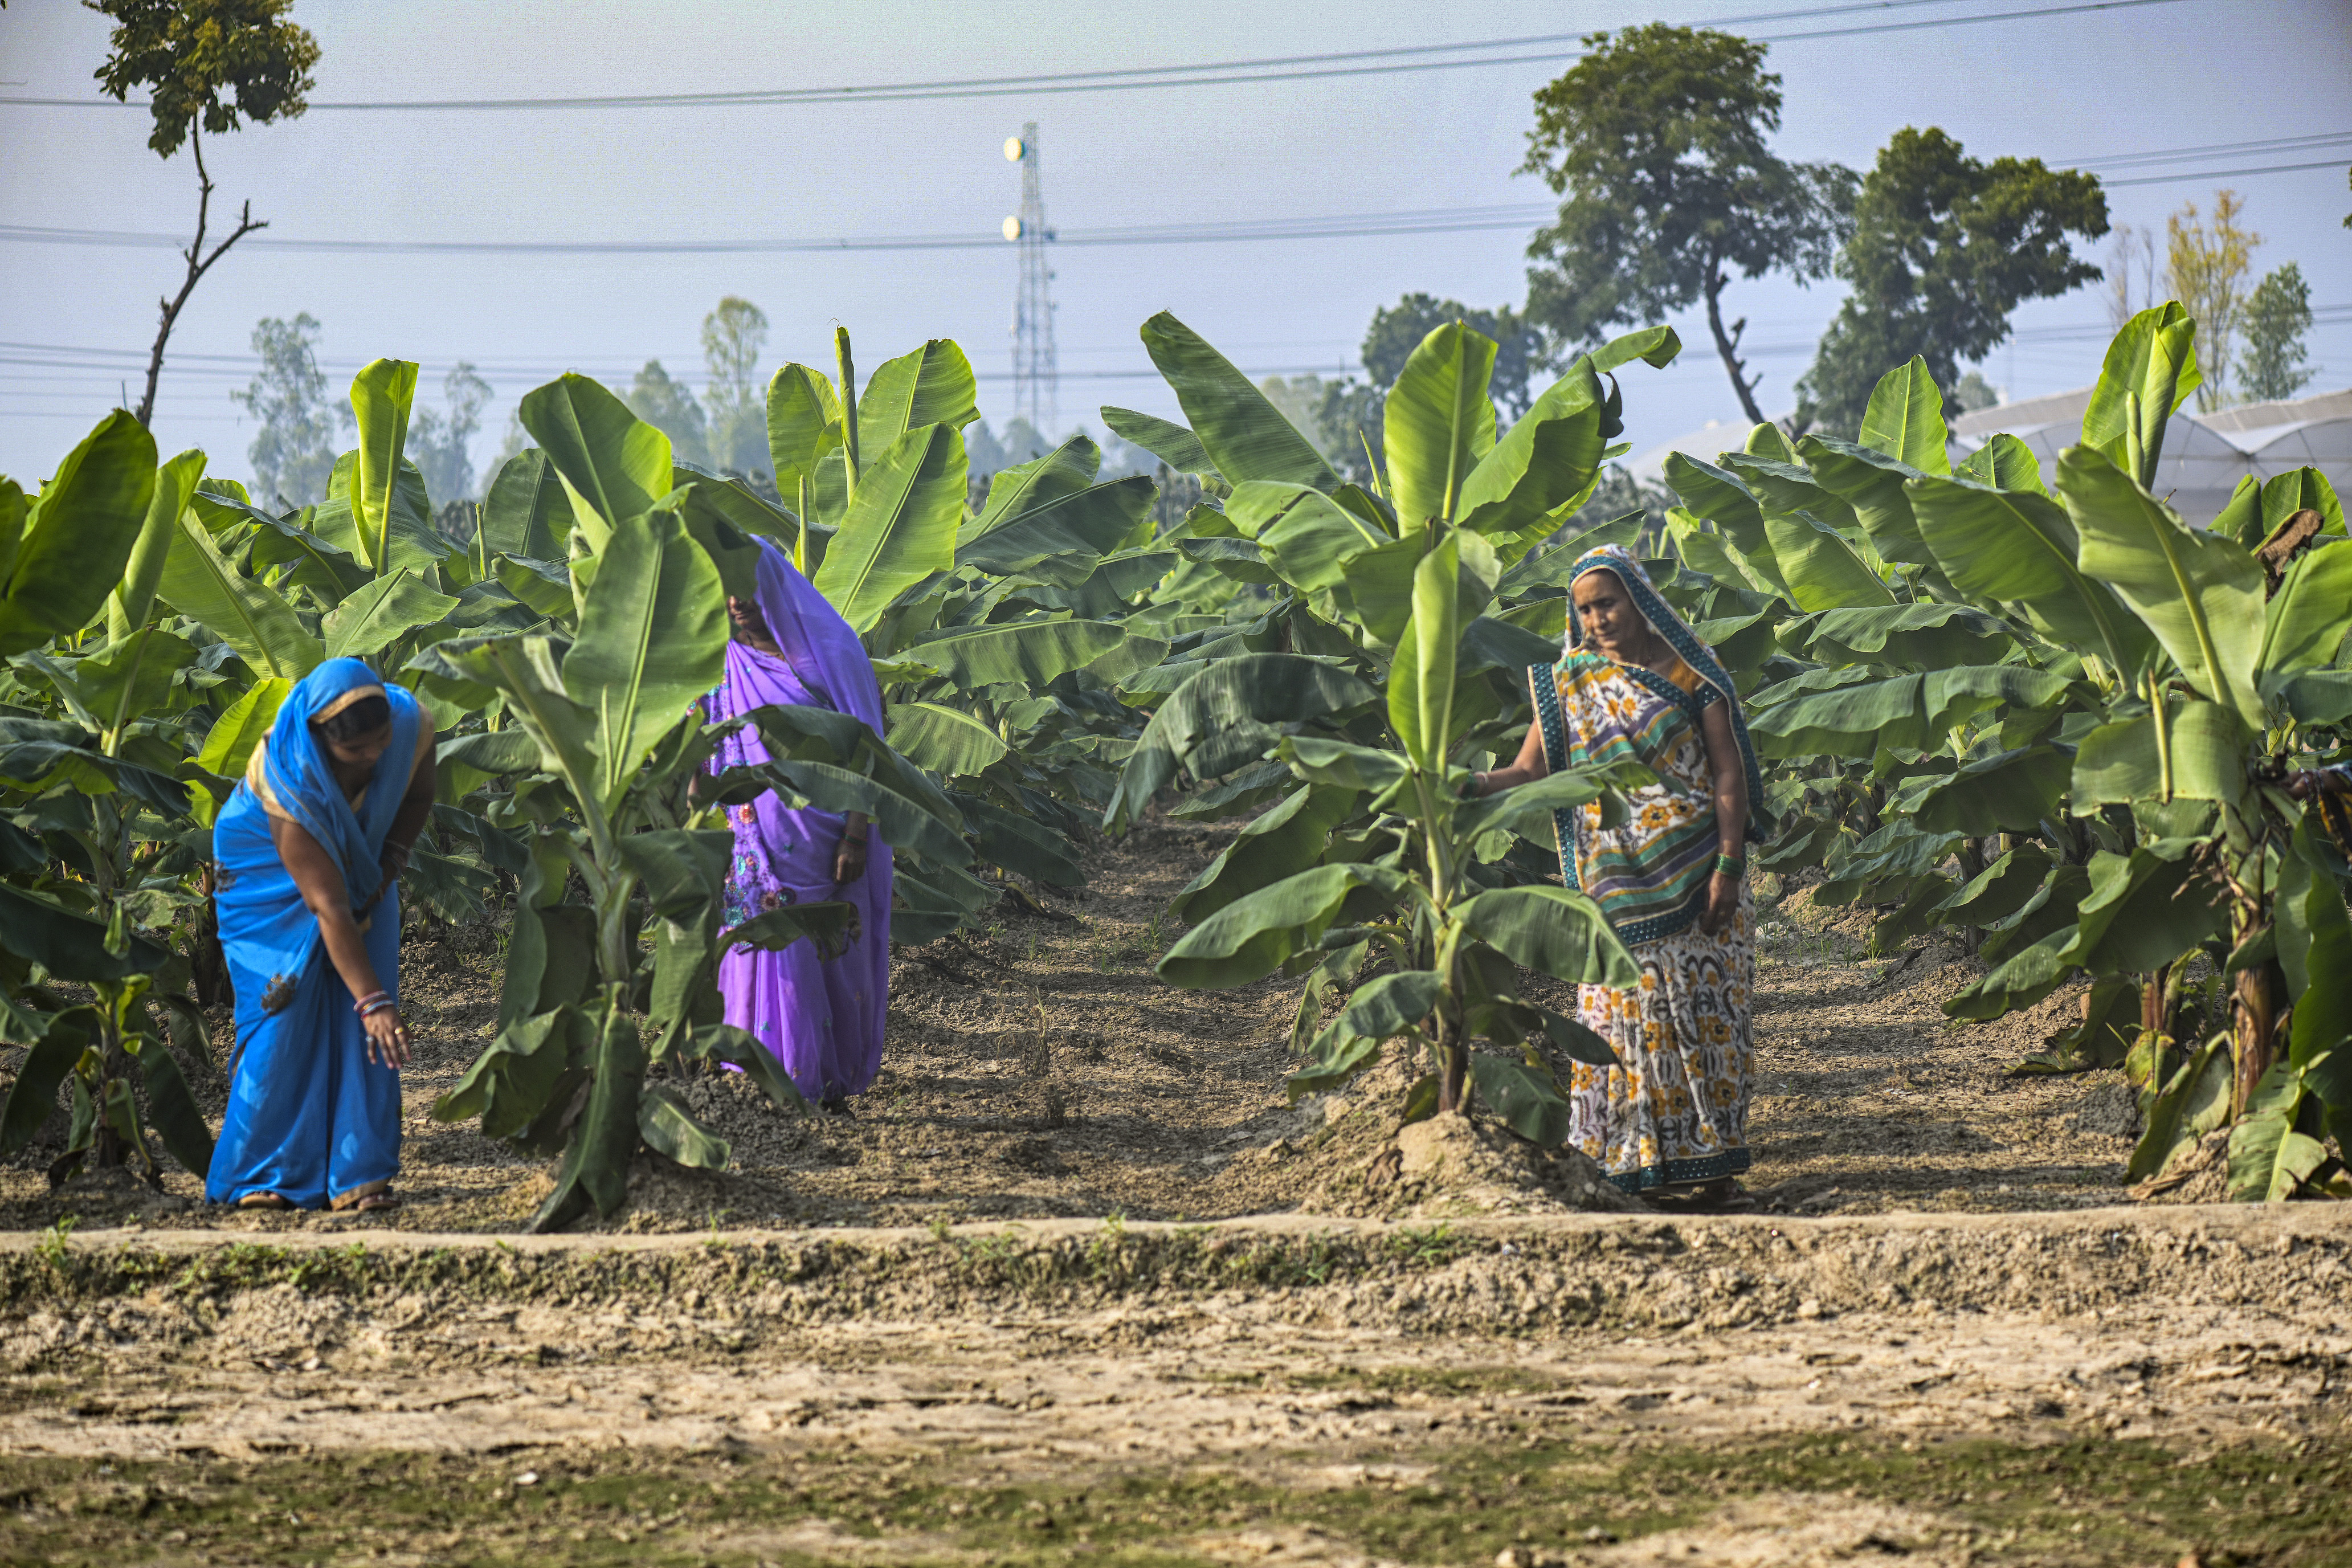 A group of women farmers in Kasimpur village